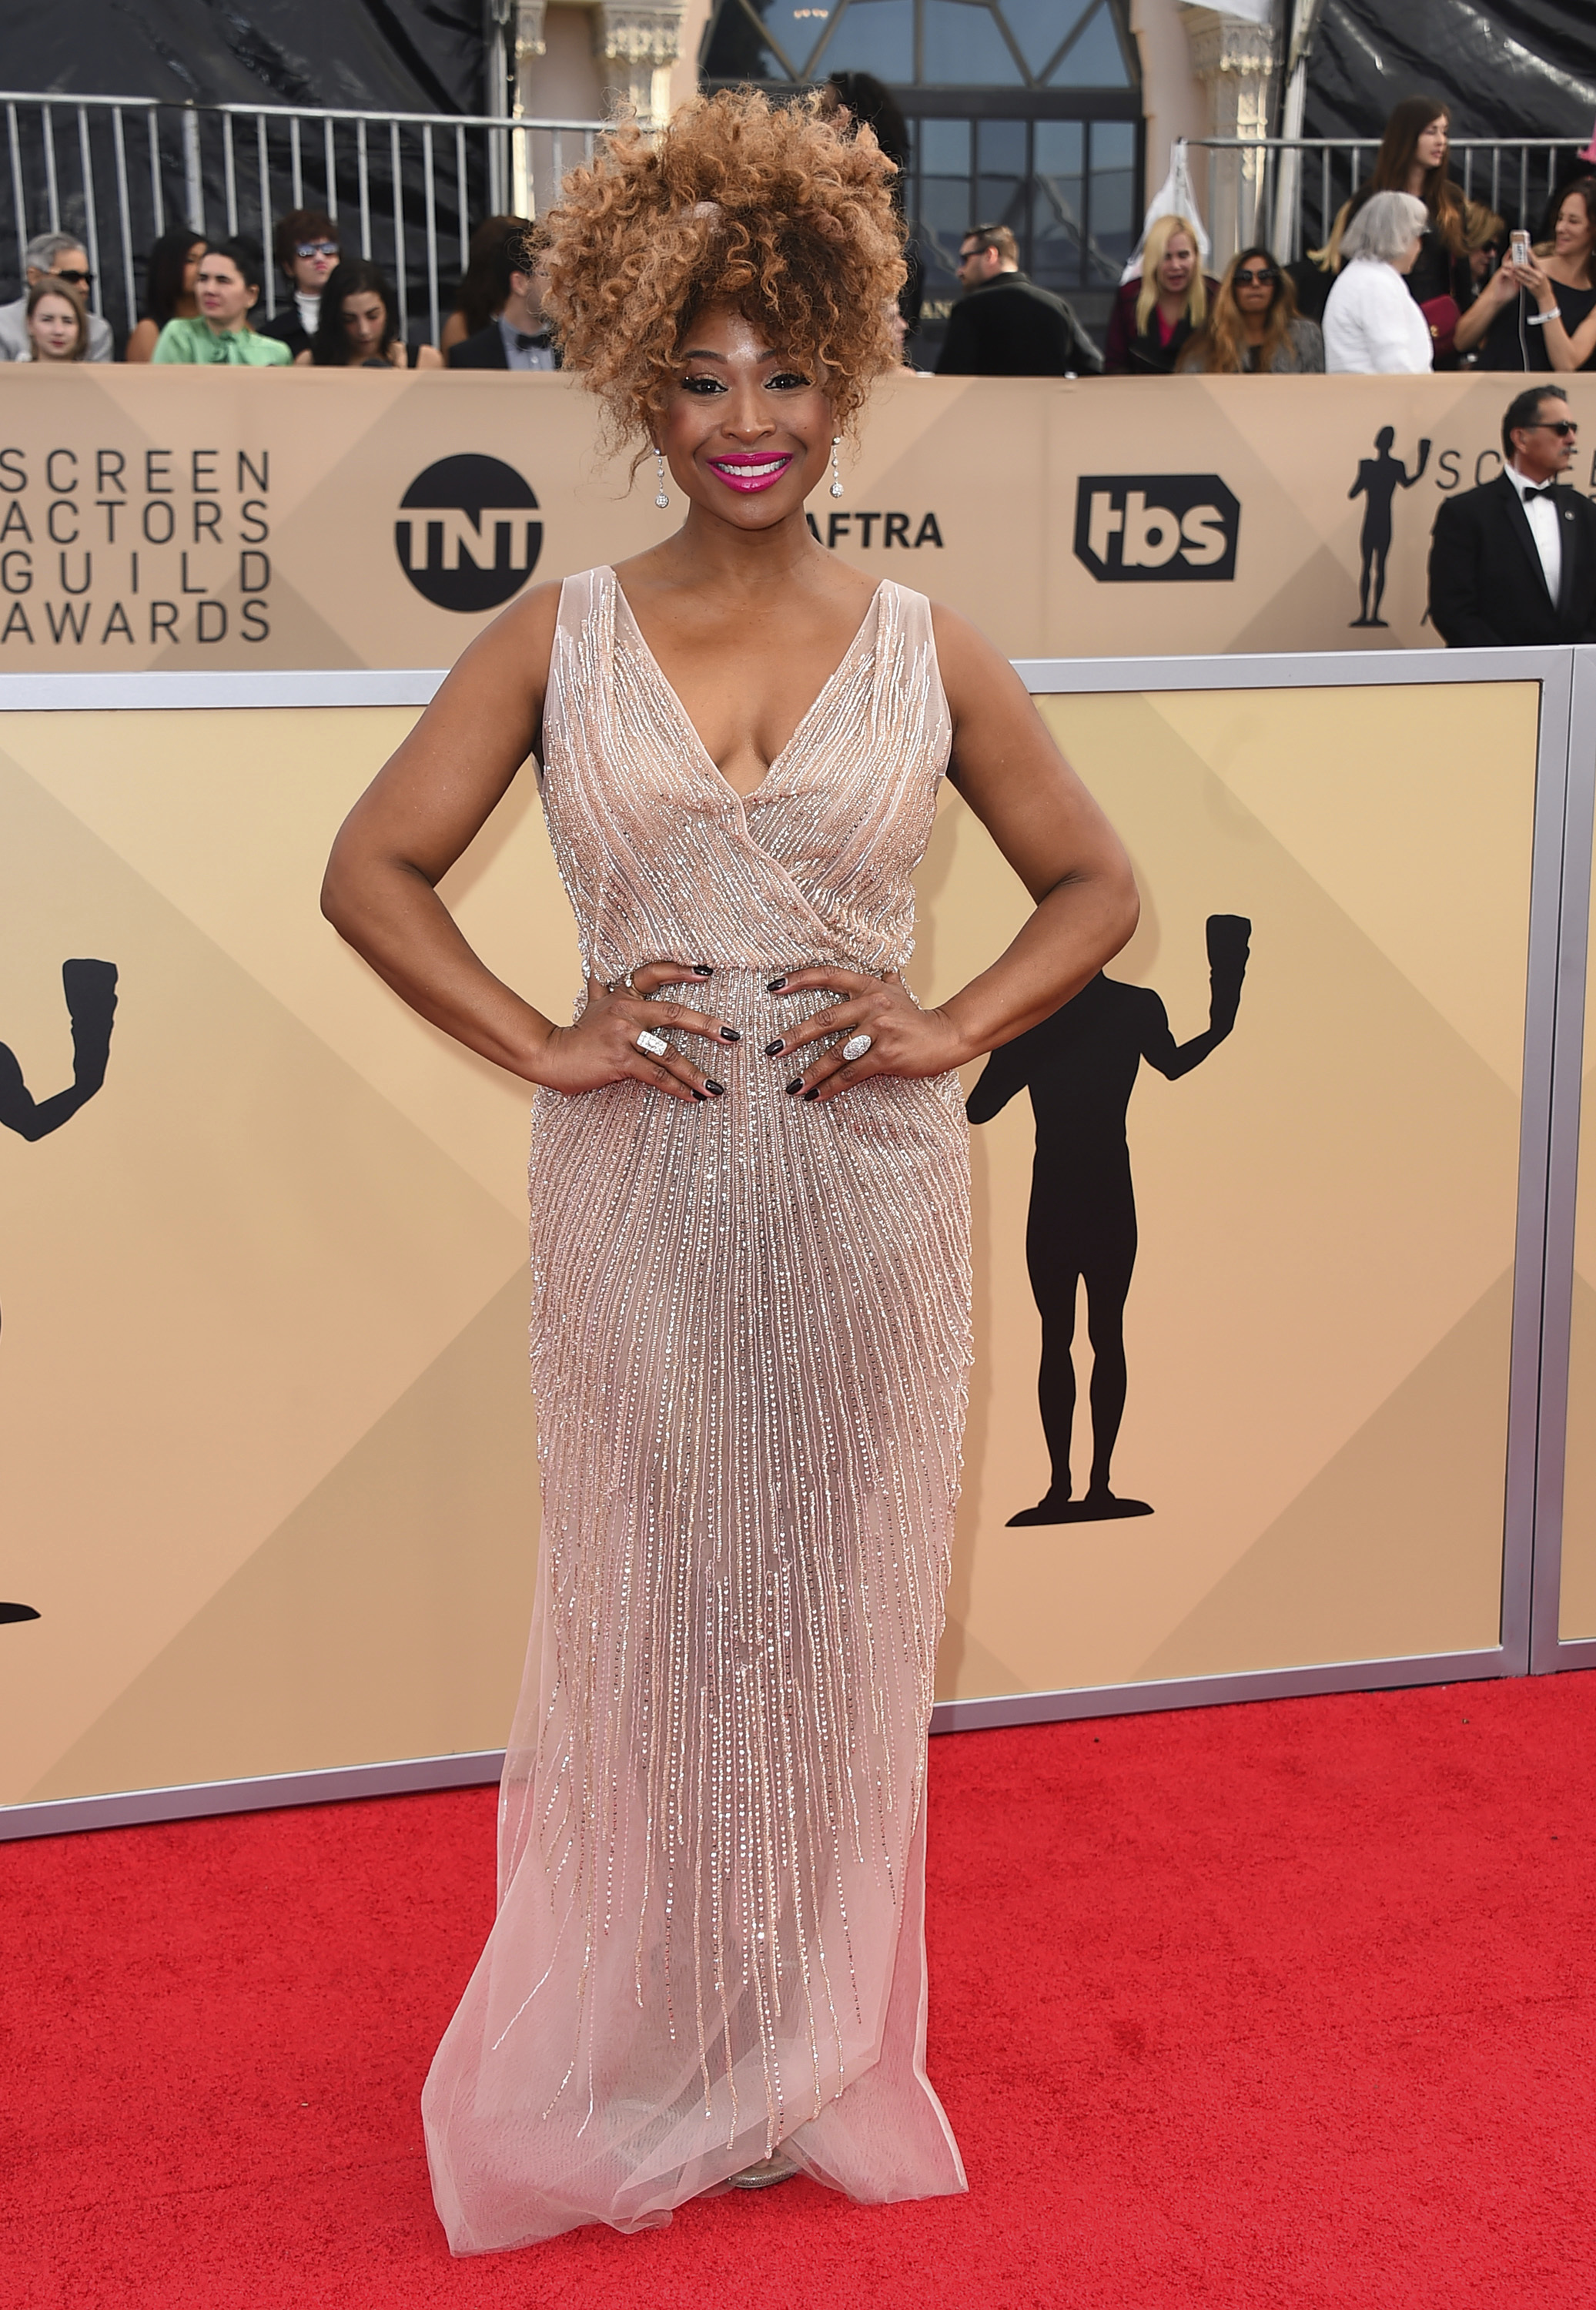 <div class='meta'><div class='origin-logo' data-origin='AP'></div><span class='caption-text' data-credit='Jordan Strauss/Invision/AP'>Tanika Ray arrives at the 24th annual Screen Actors Guild Awards at the Shrine Auditorium & Expo Hall on Sunday, Jan. 21, 2018, in Los Angeles.</span></div>